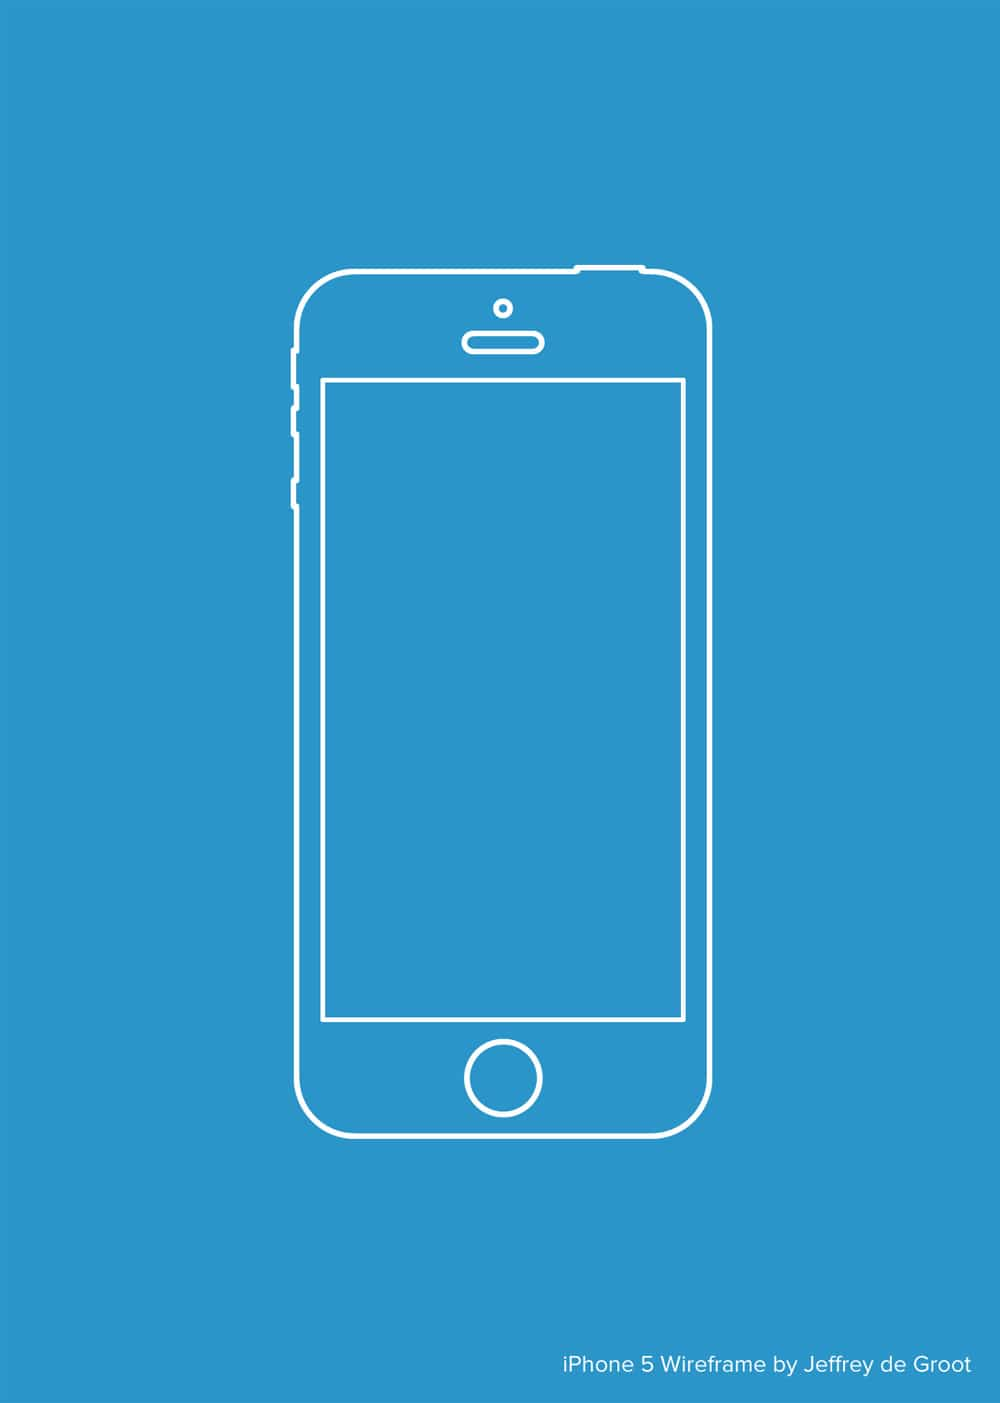 Mockup Iphone Video Latest Collection Of Iphone Wireframe Psds › Wireframes